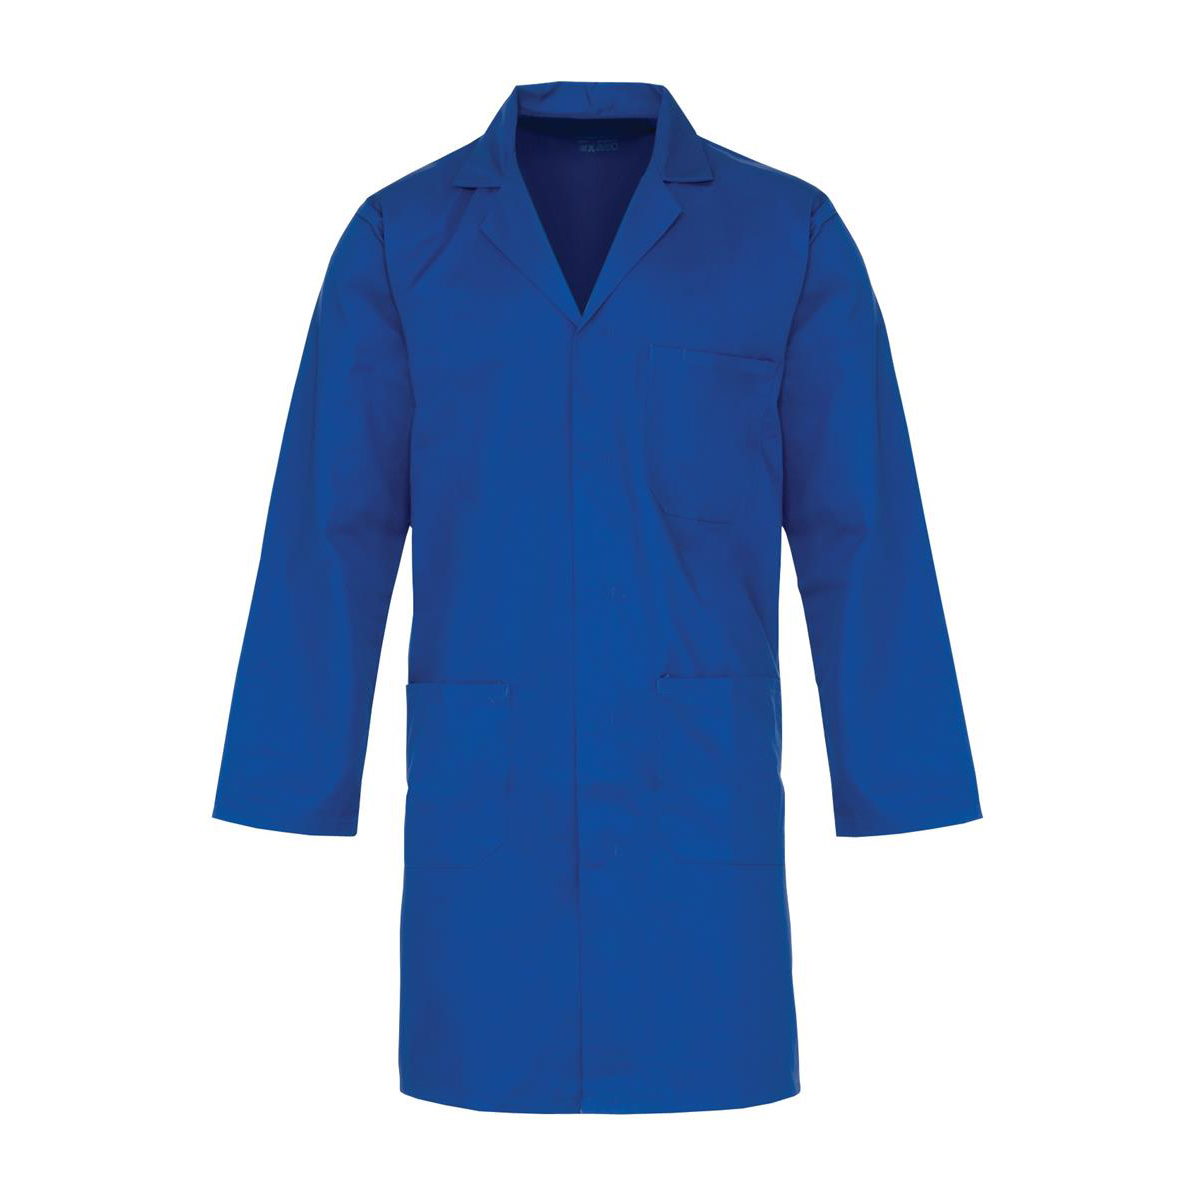 Supertouch Lab Coat Polycotton with 3 Pockets XXXXLarge Navy Approx 3 Day Leadtime